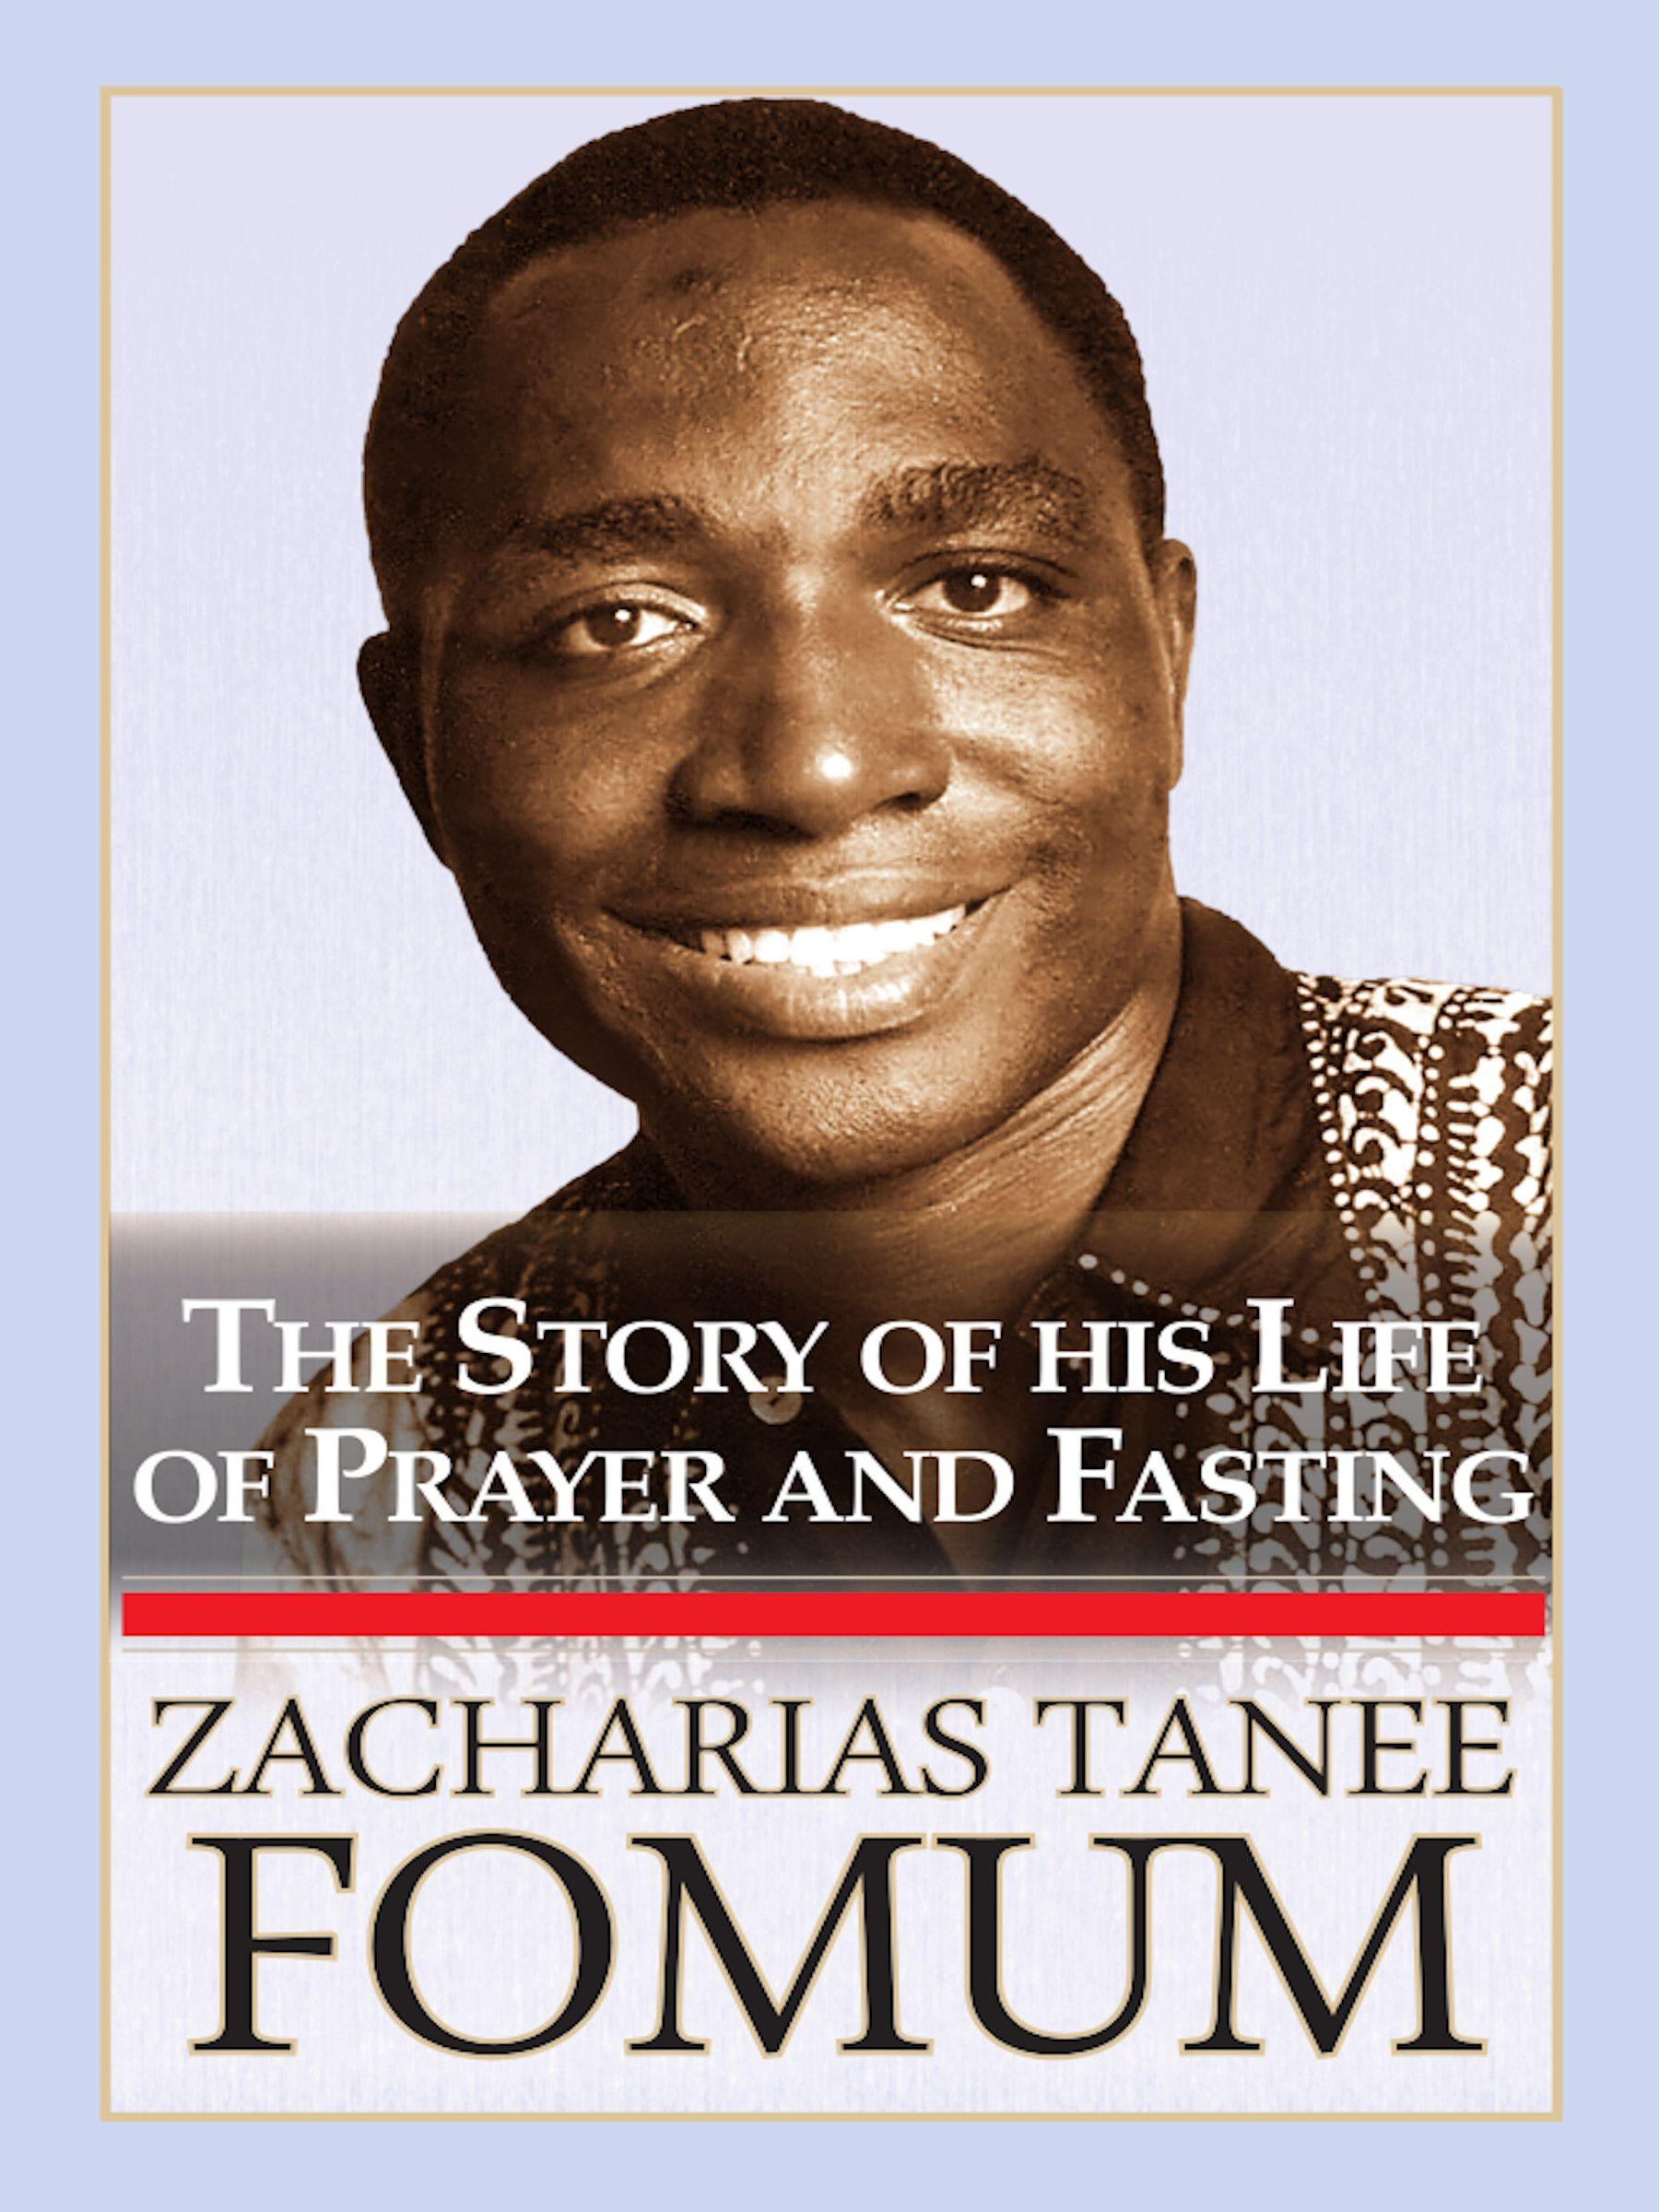 The Story of his life of Prayer and fasting